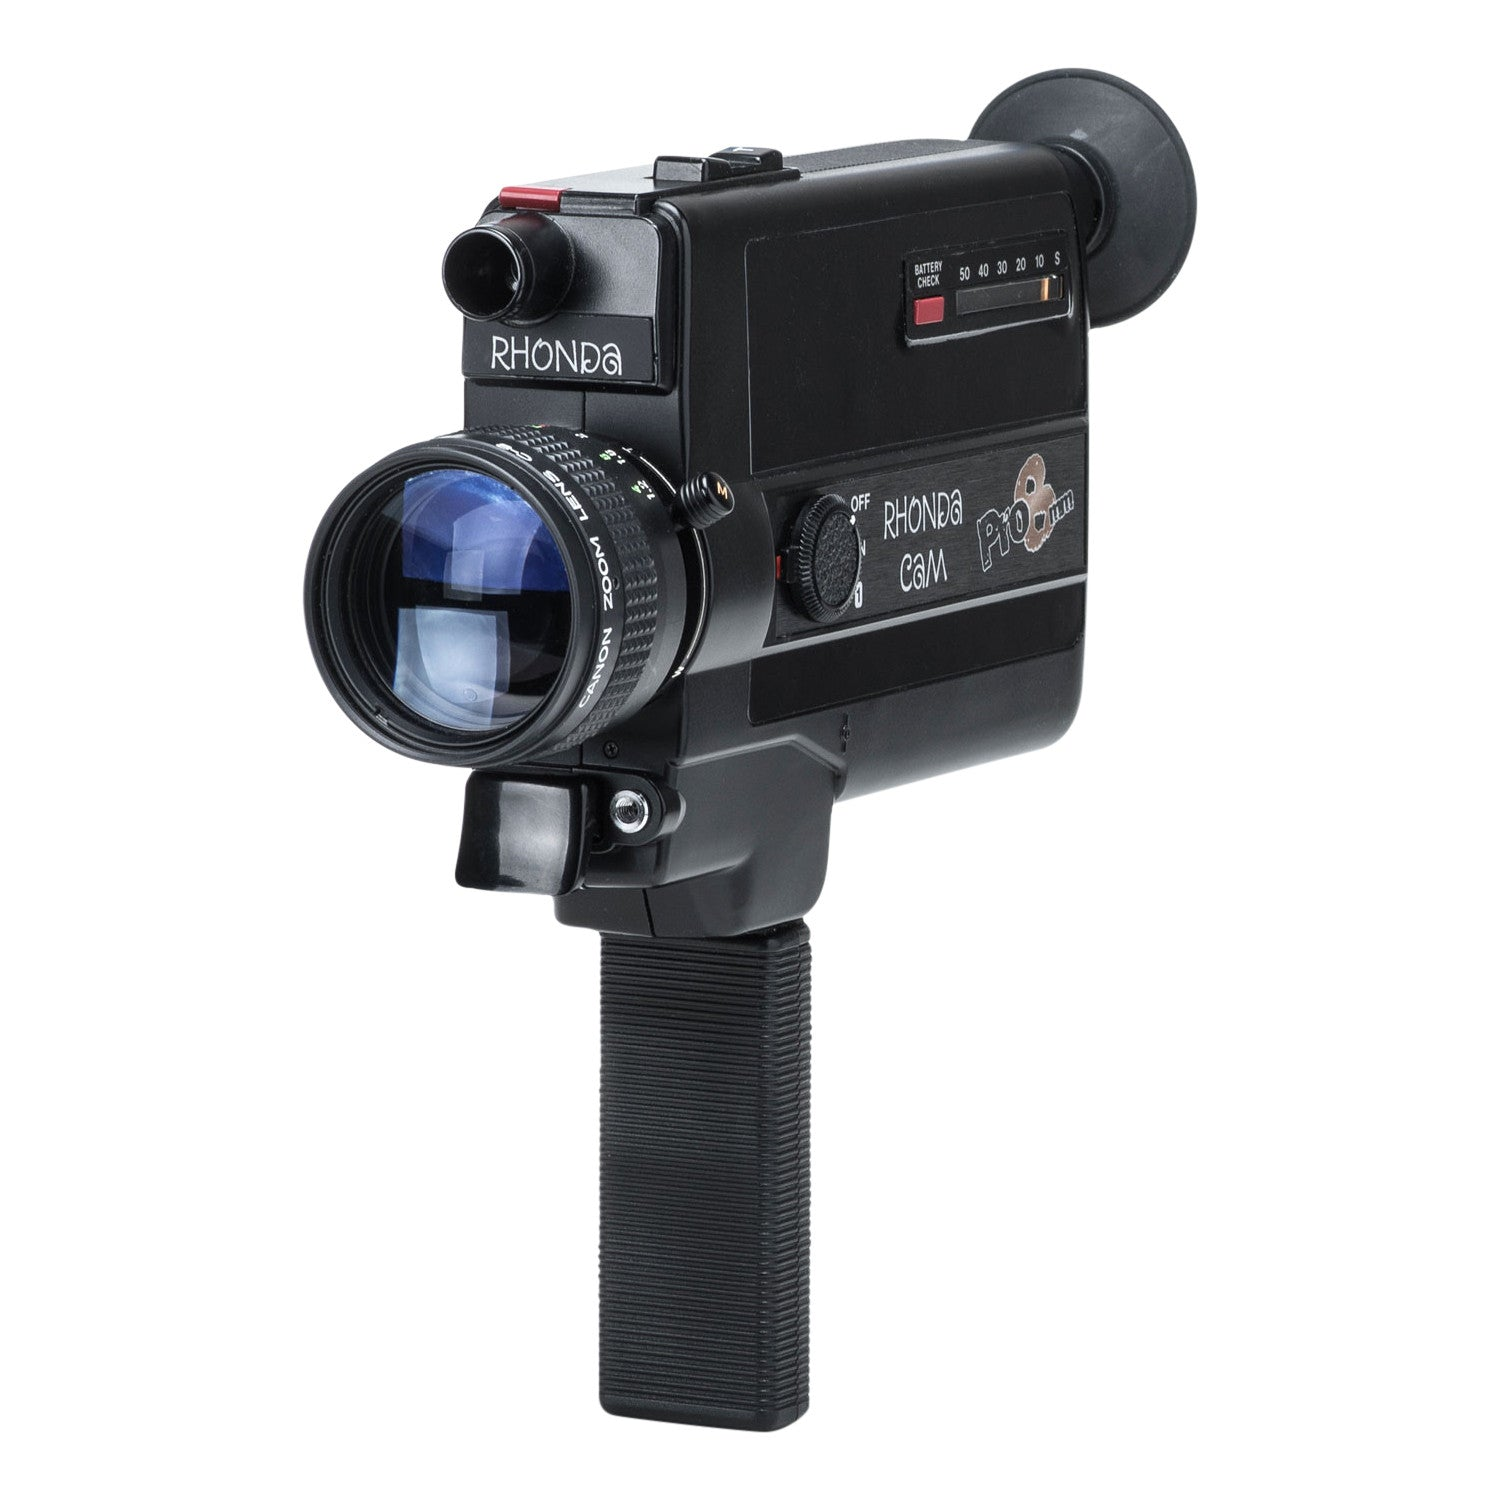 Rhonda CAM Super 8 Camera